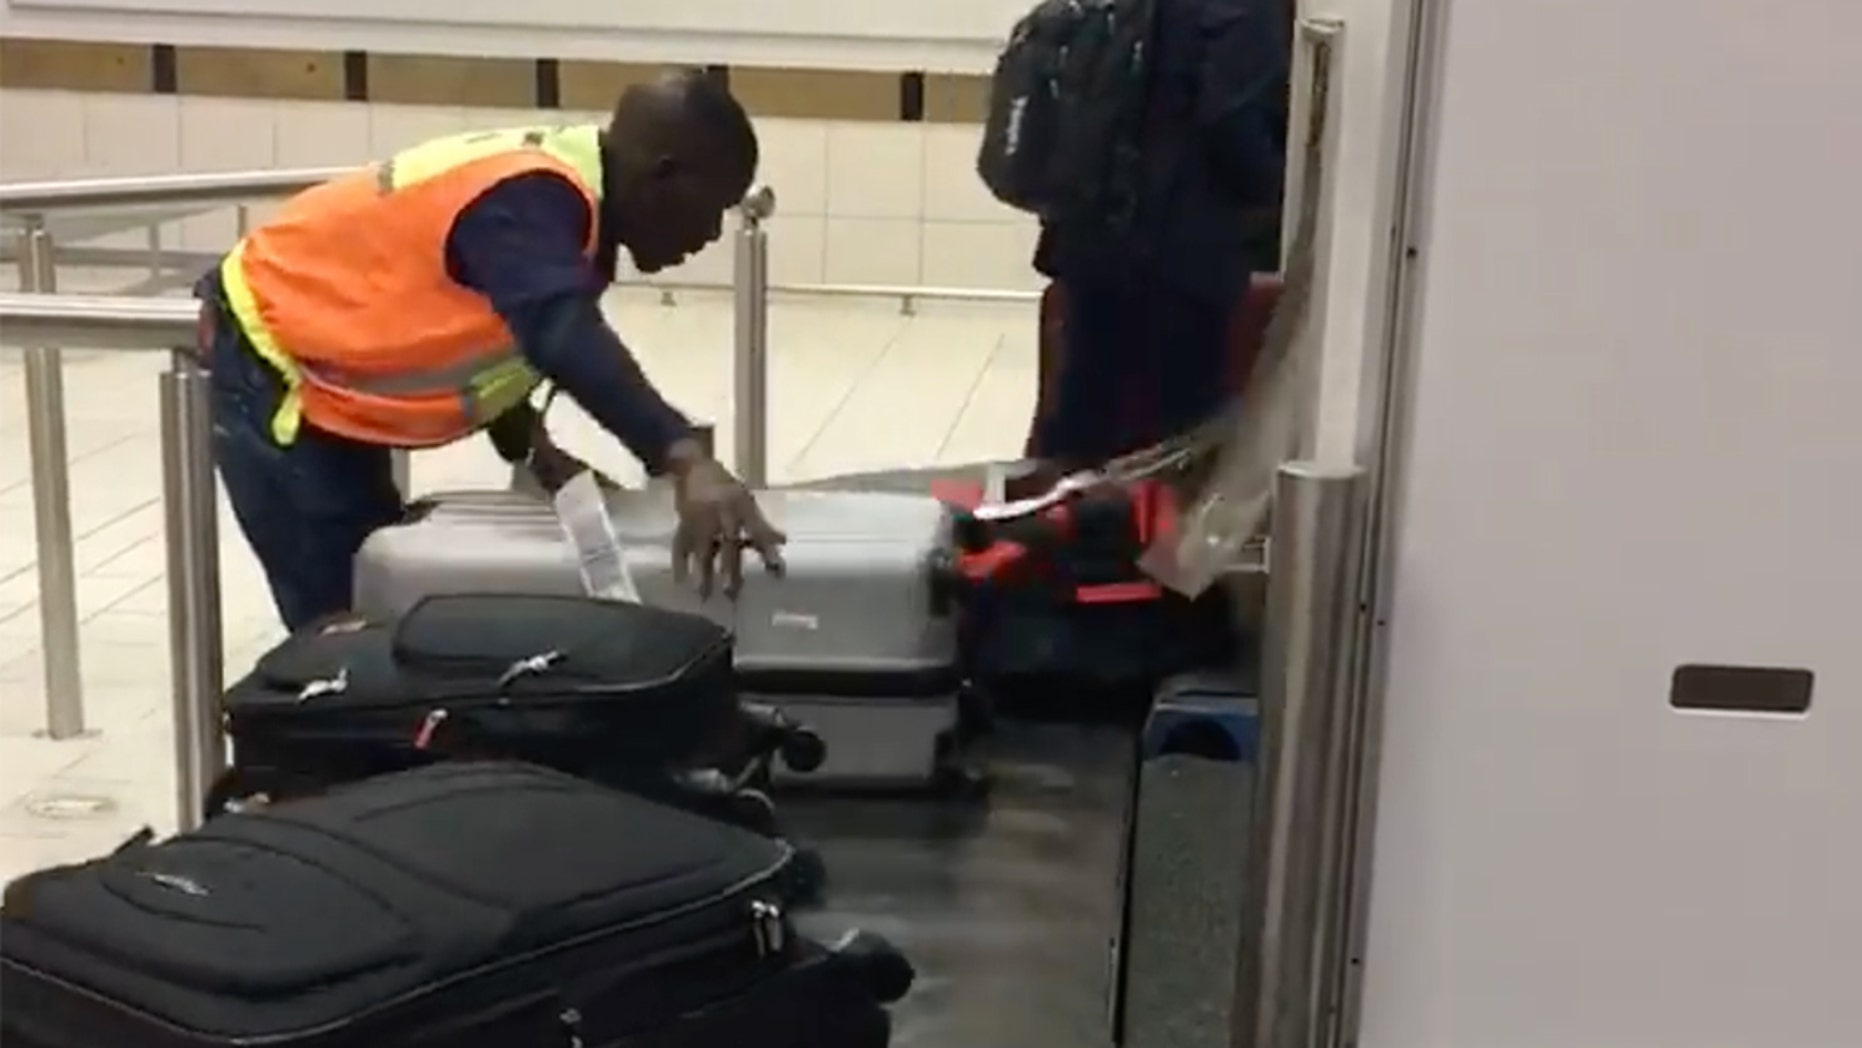 Ephraim Sibeko of Lanseria International Airport in South Africa has gone viral for going the extra mile.